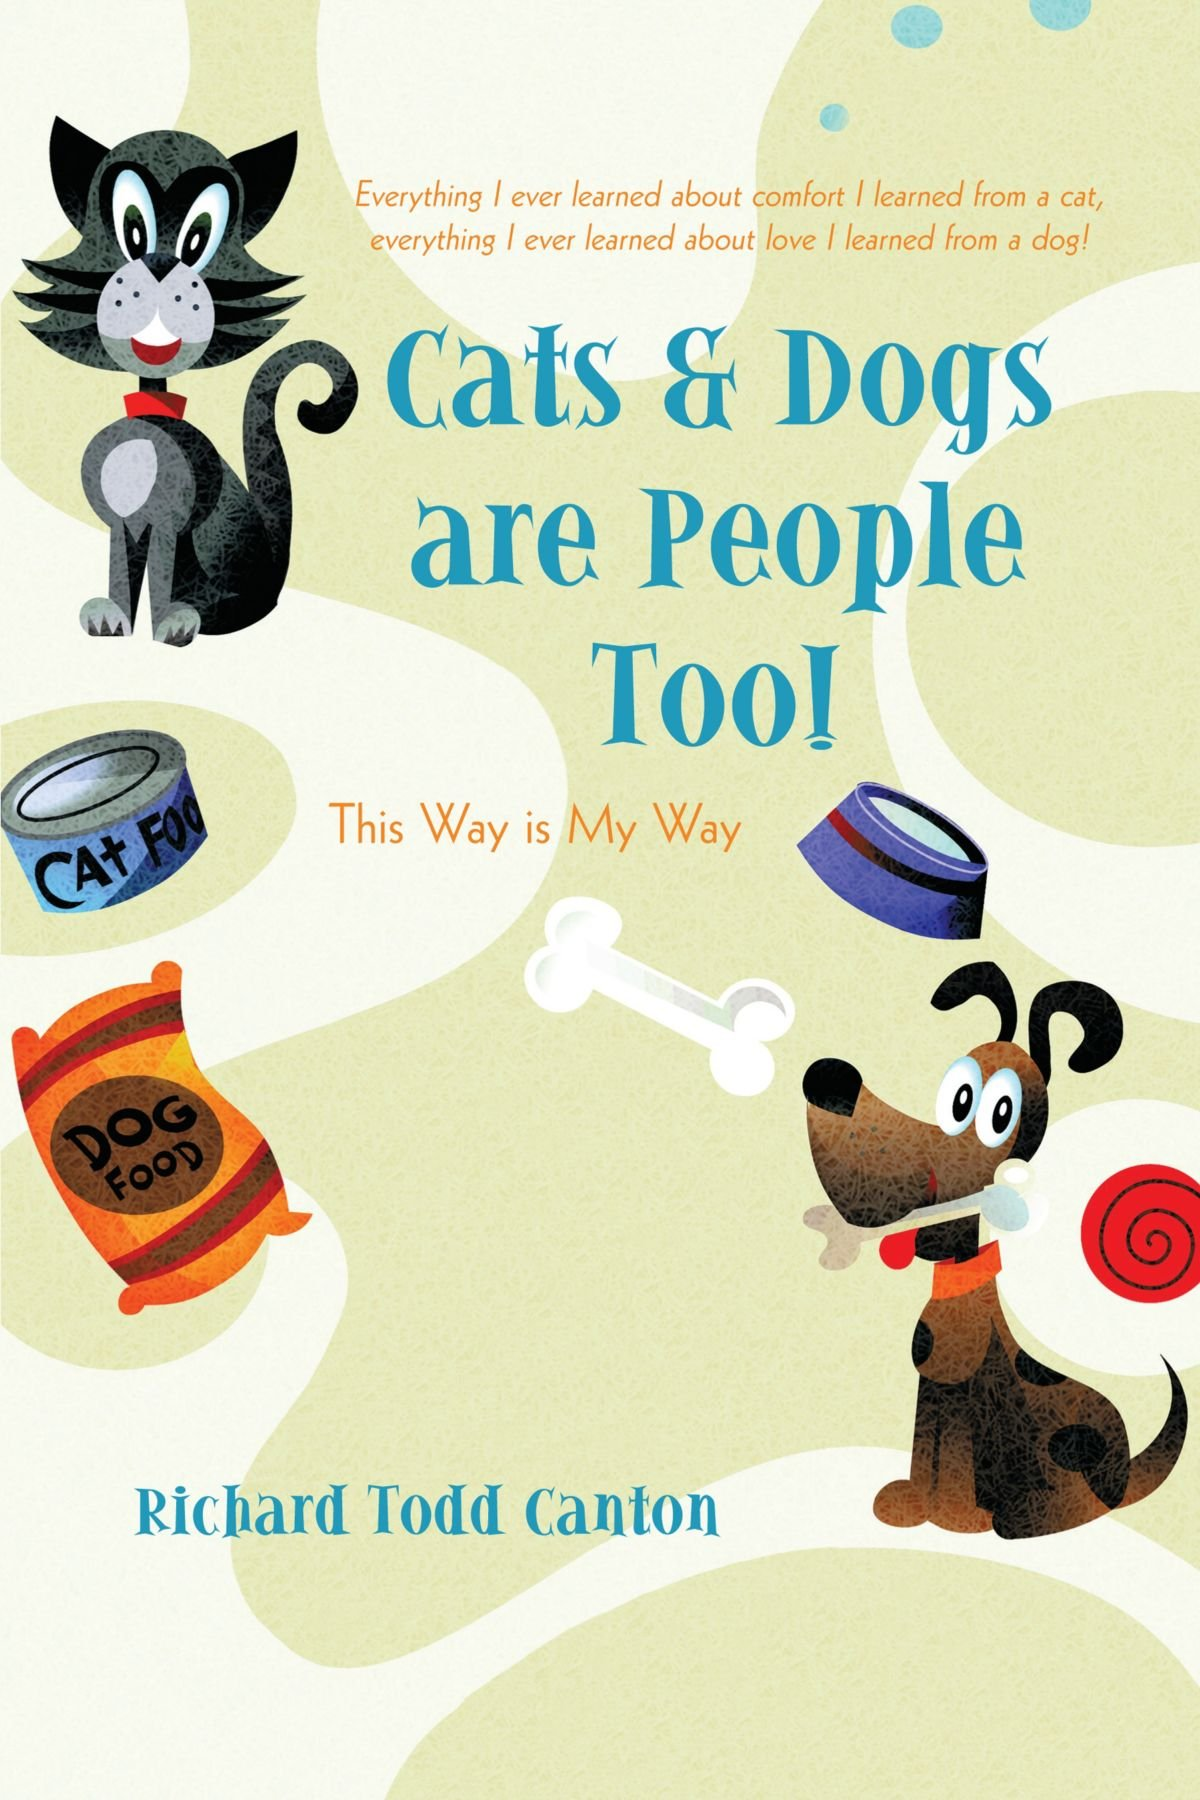 Cats & Dogs are People Too!: This Way is My Way